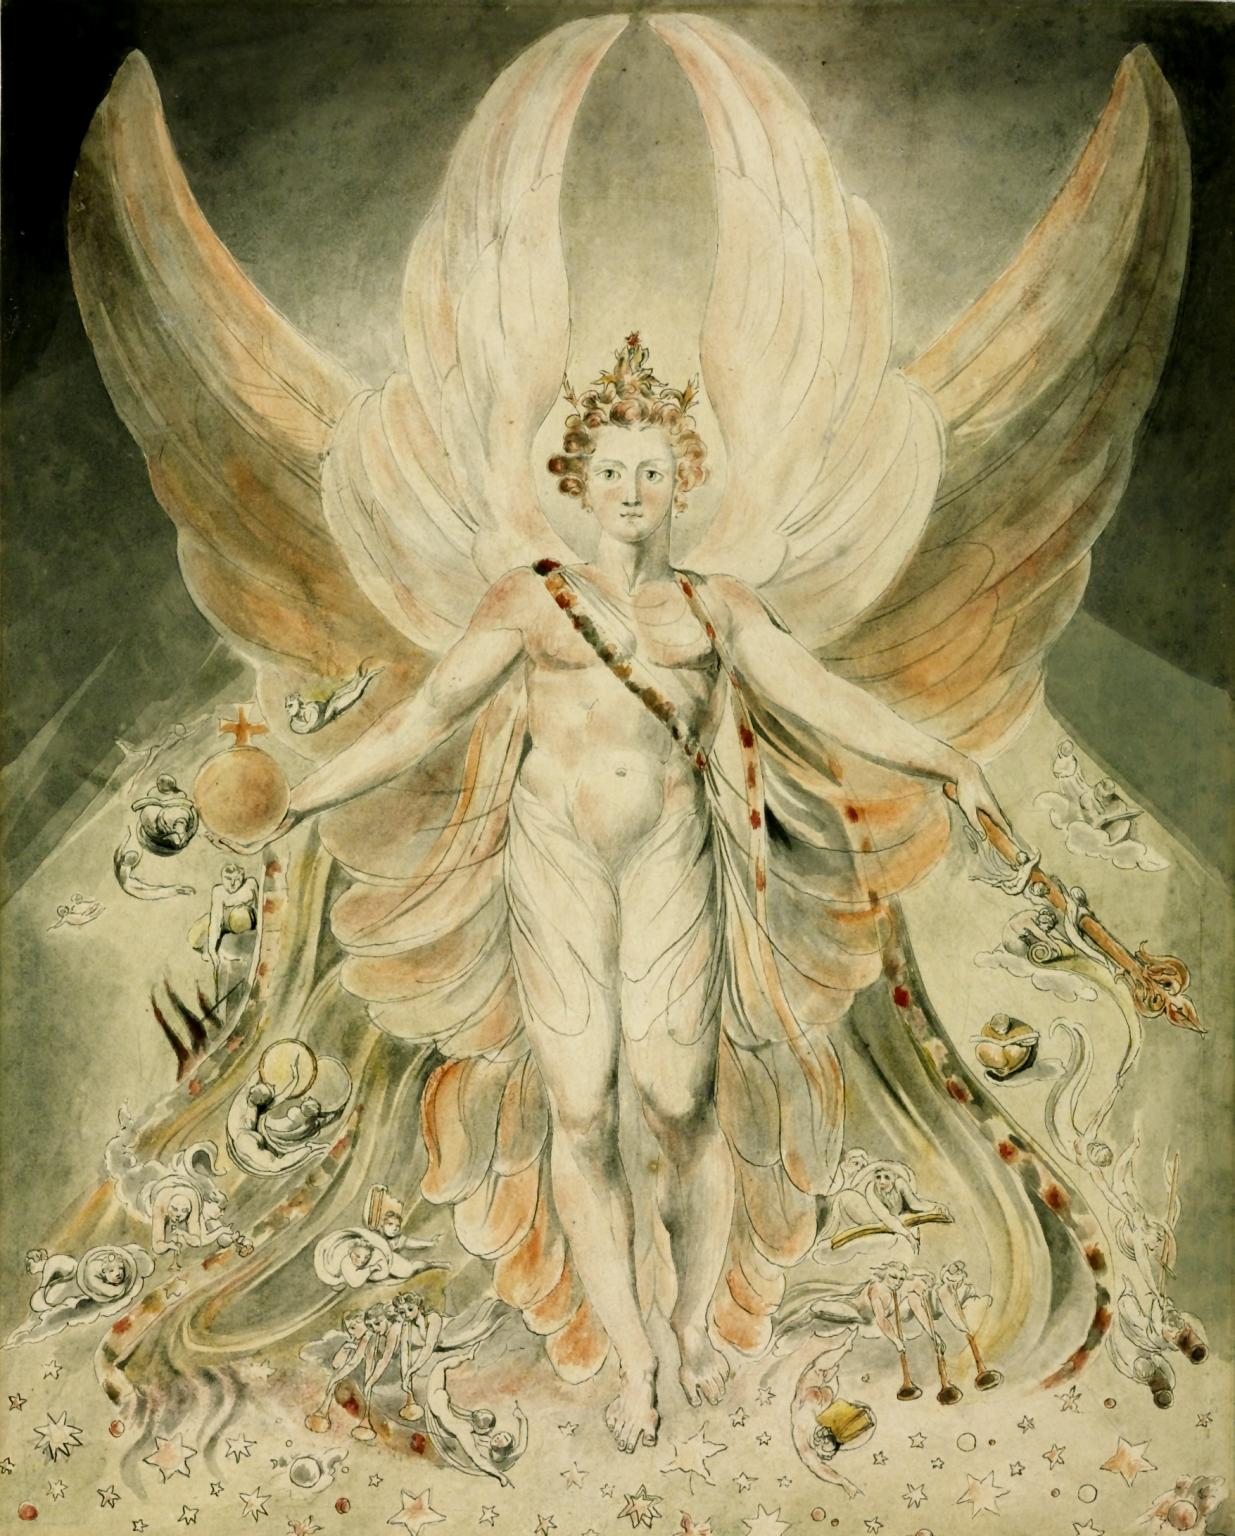 Satan-in-His-Original-Glory-Thou-Wast-Perfect-Till-Iniquity-was-Found-in-Thee-ca-1805